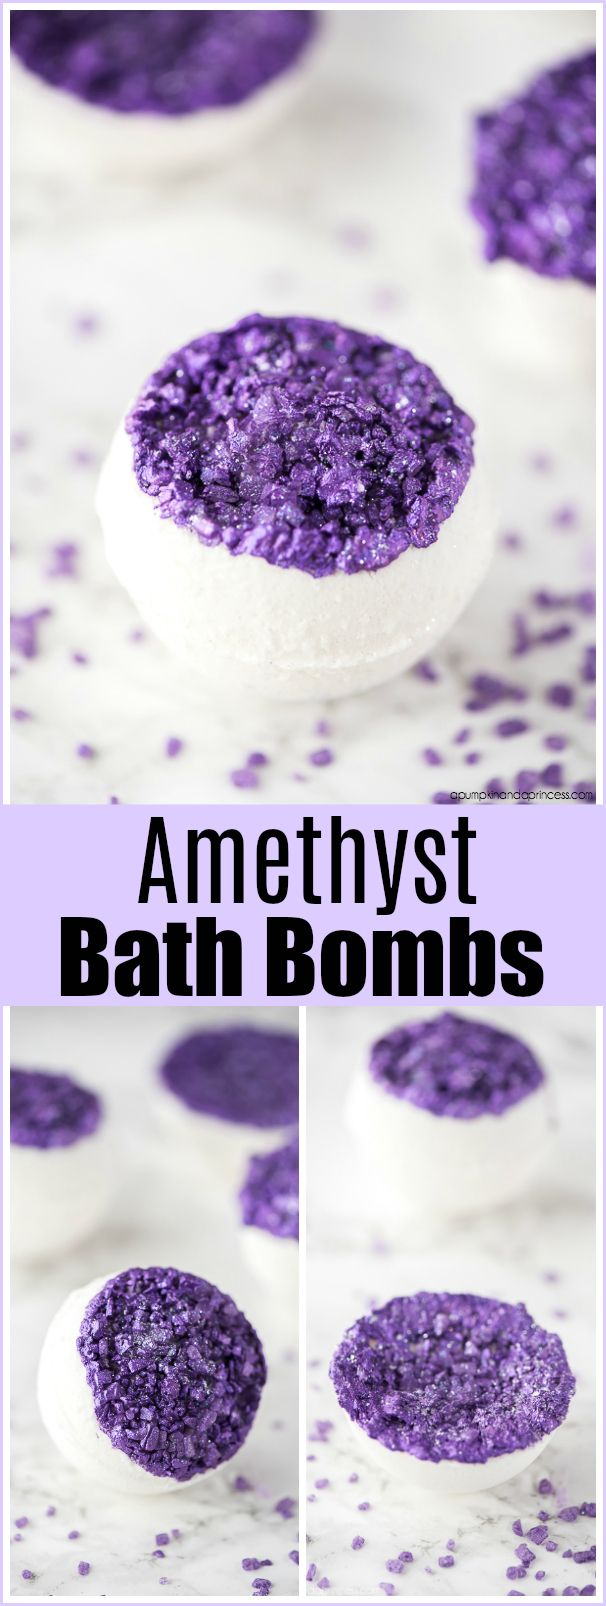 DIY Amethyst Bath Bombs – How to make bath bombs inspired by amethyst stones made with sea salts and lavender essential oil.